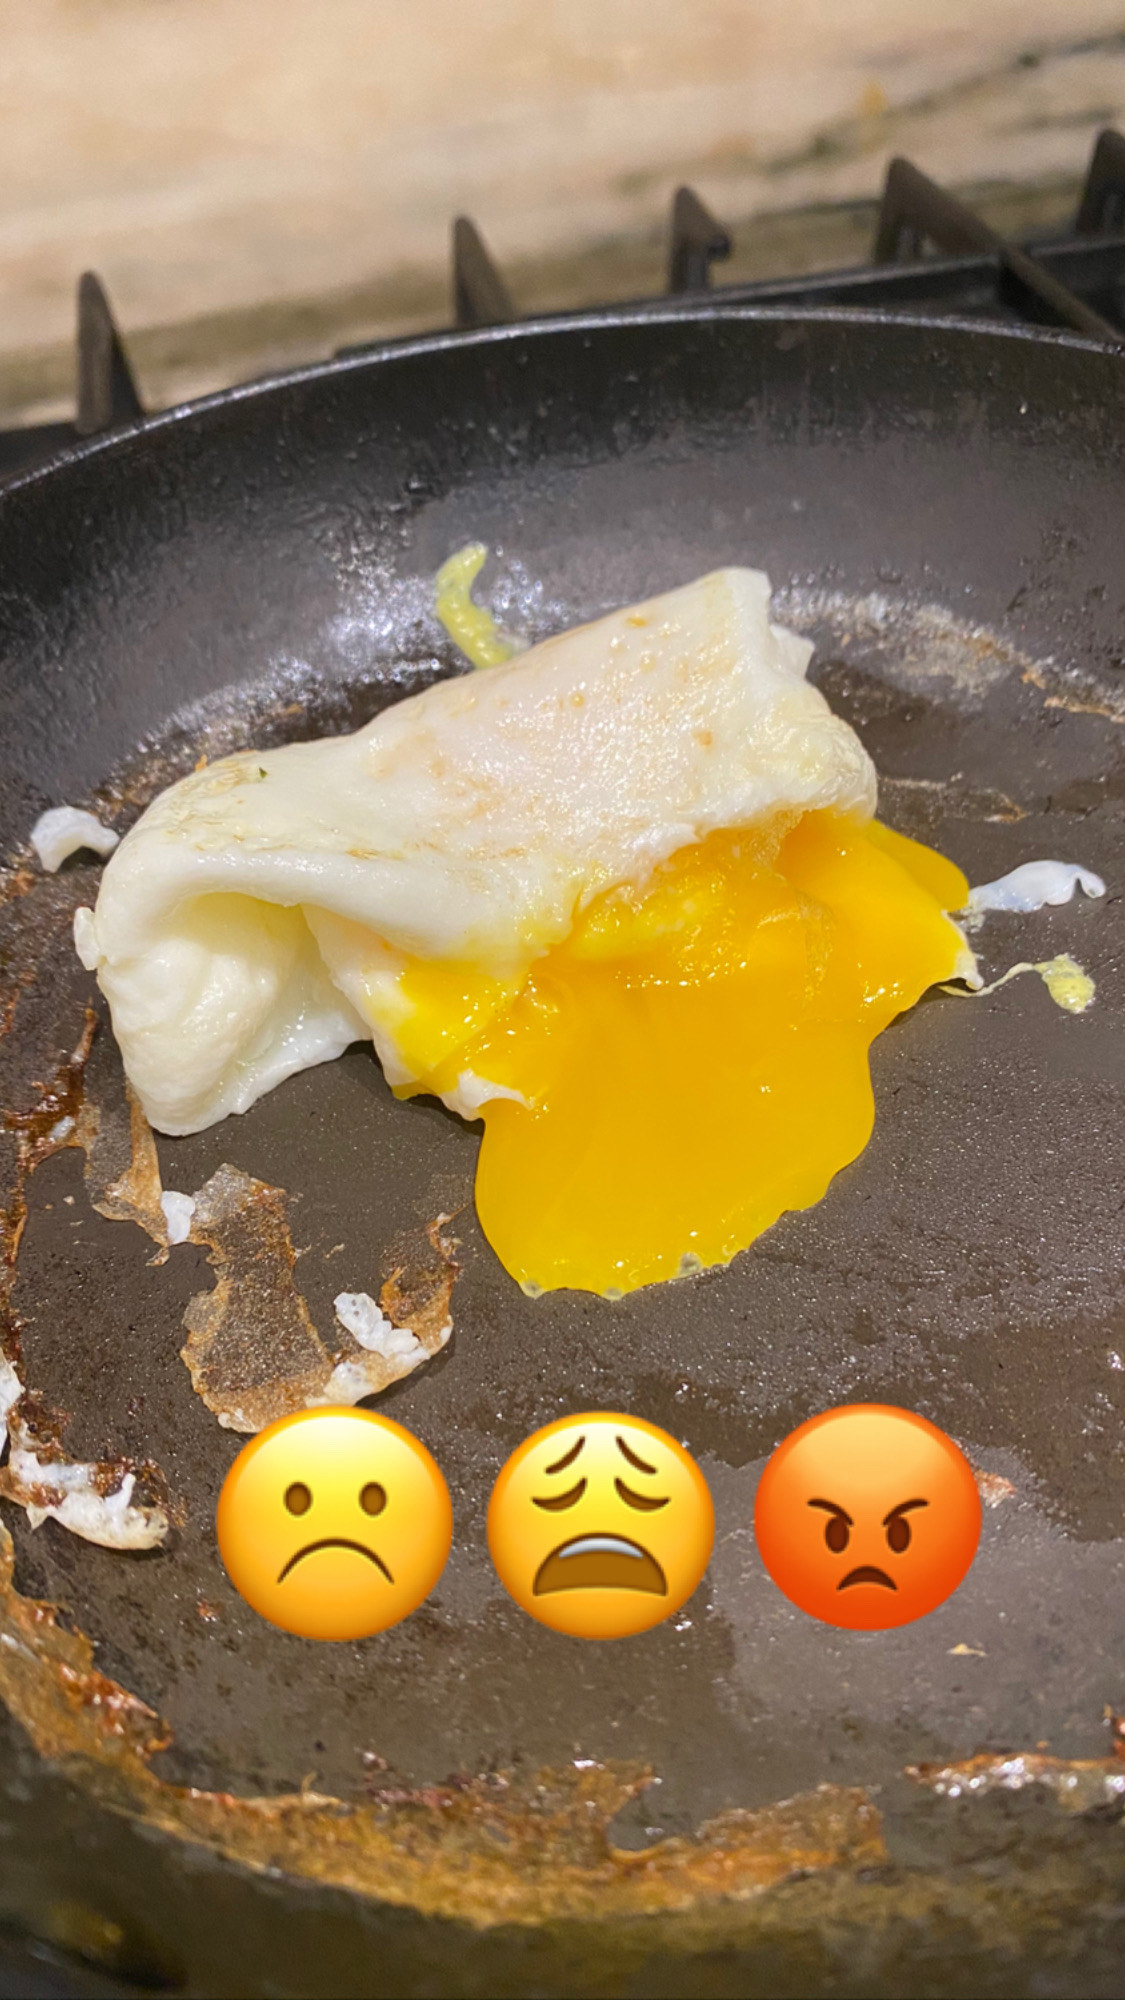 My failed attempt to make an egg envelope with yolk dribbling out onto the pan.